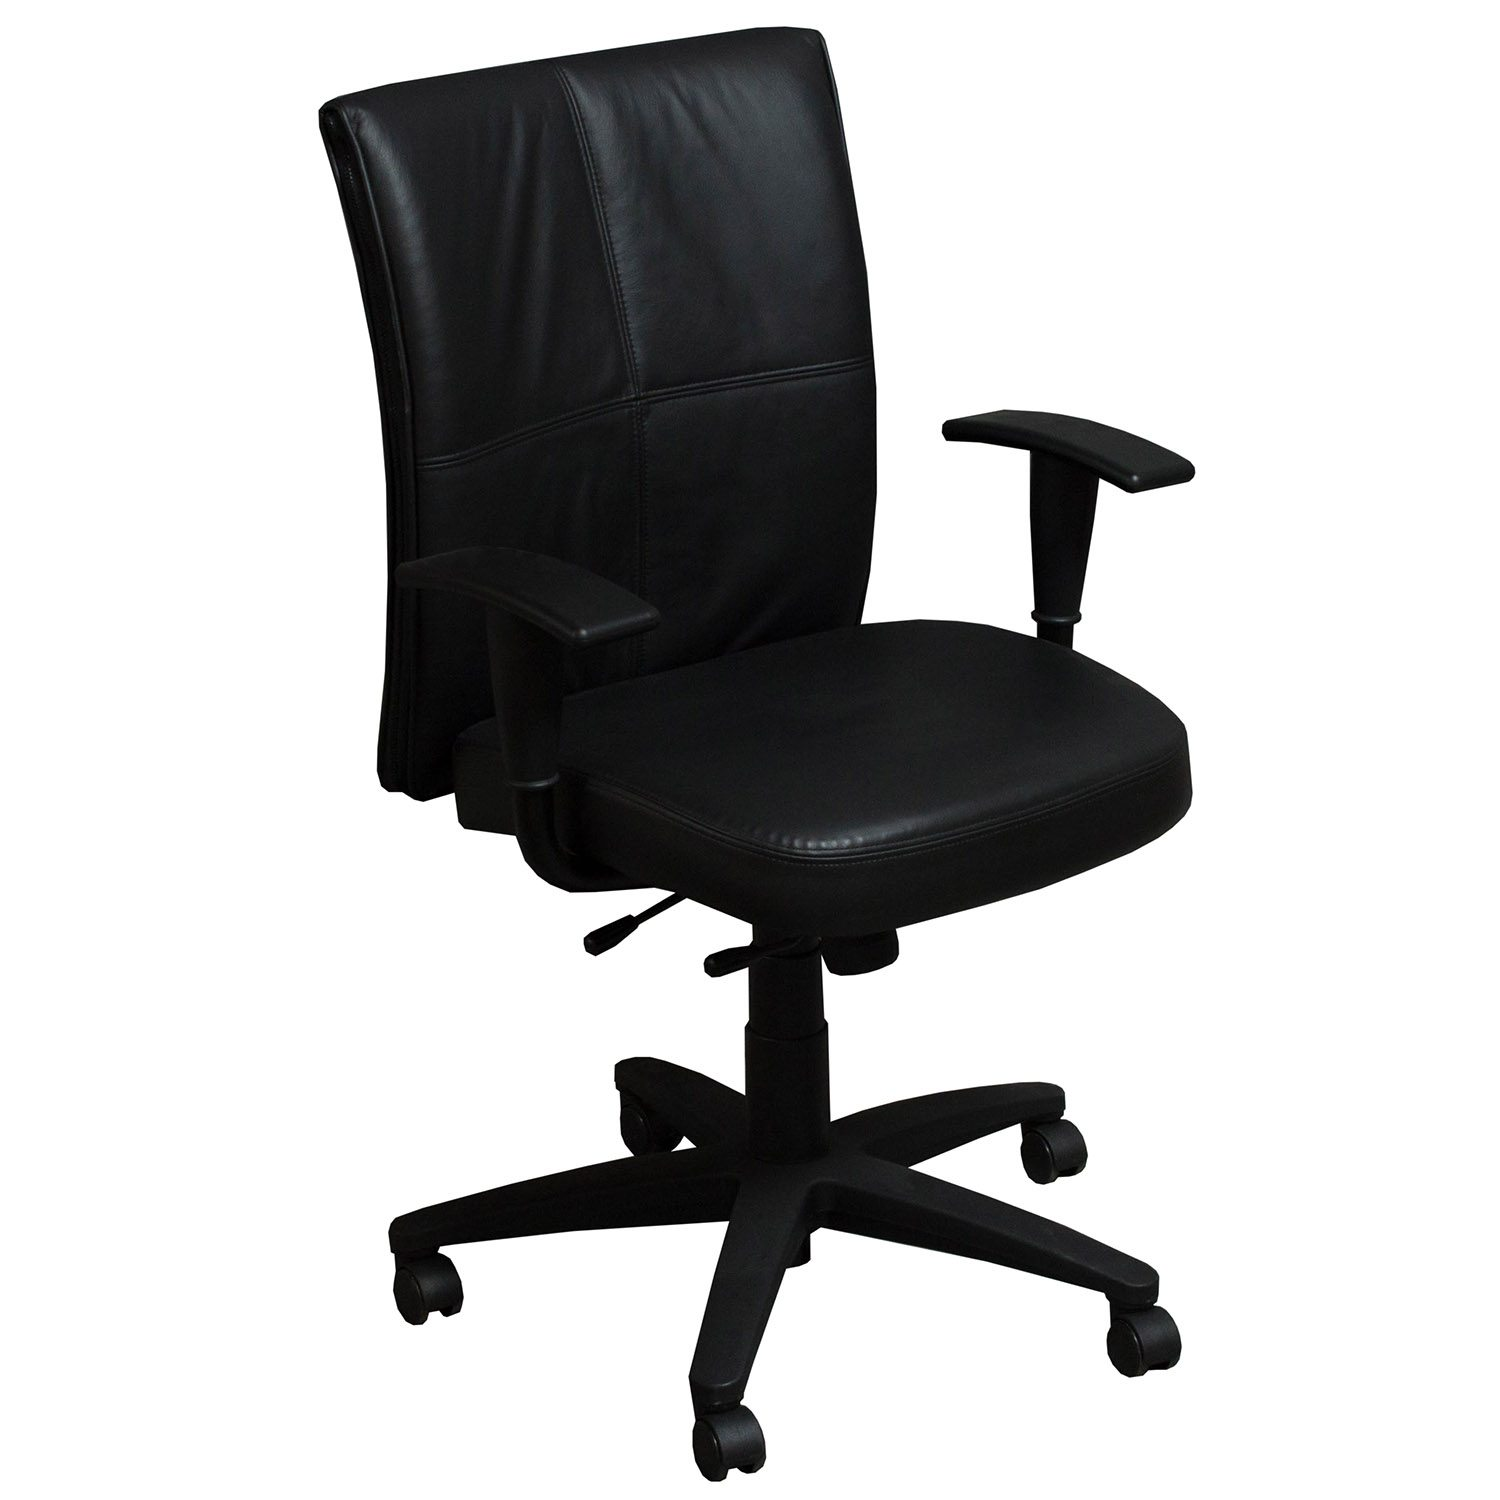 Steelcase Chairs Steelcase Turnstone Jacket Used Conference Chair Black